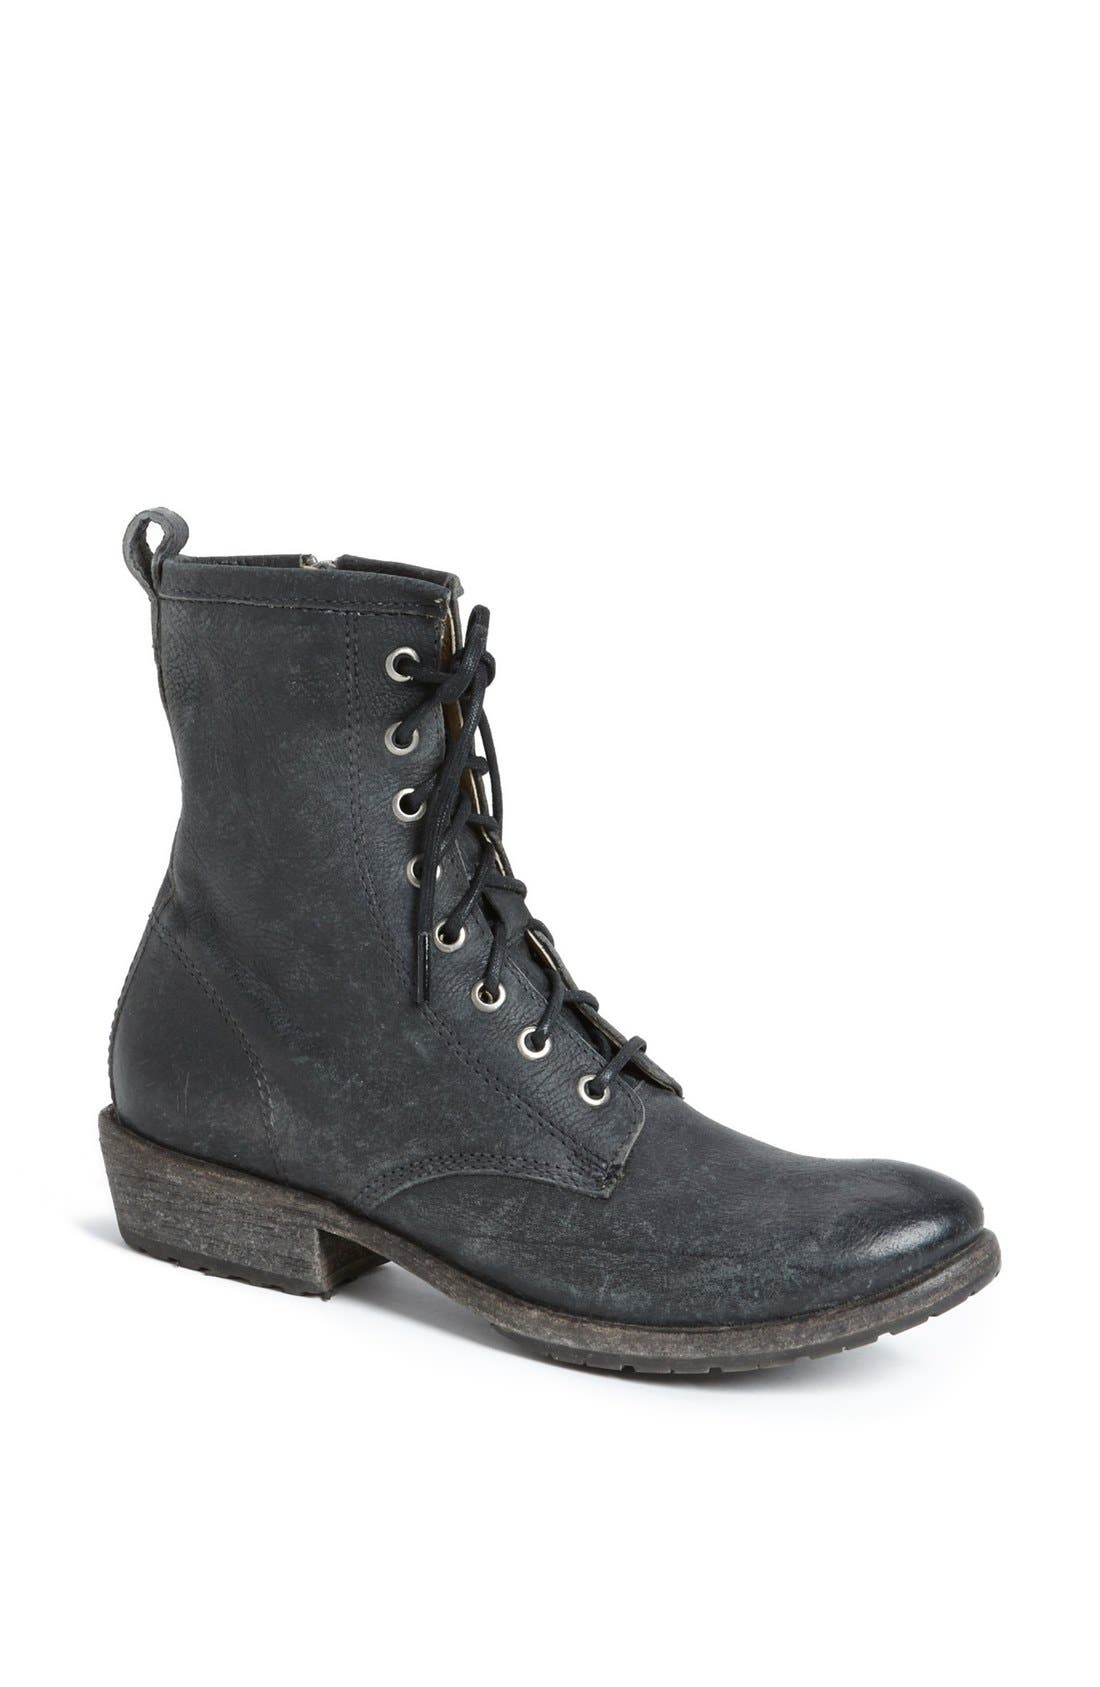 Alternate Image 1 Selected - Frye 'Carson' Lace-Up Bootie